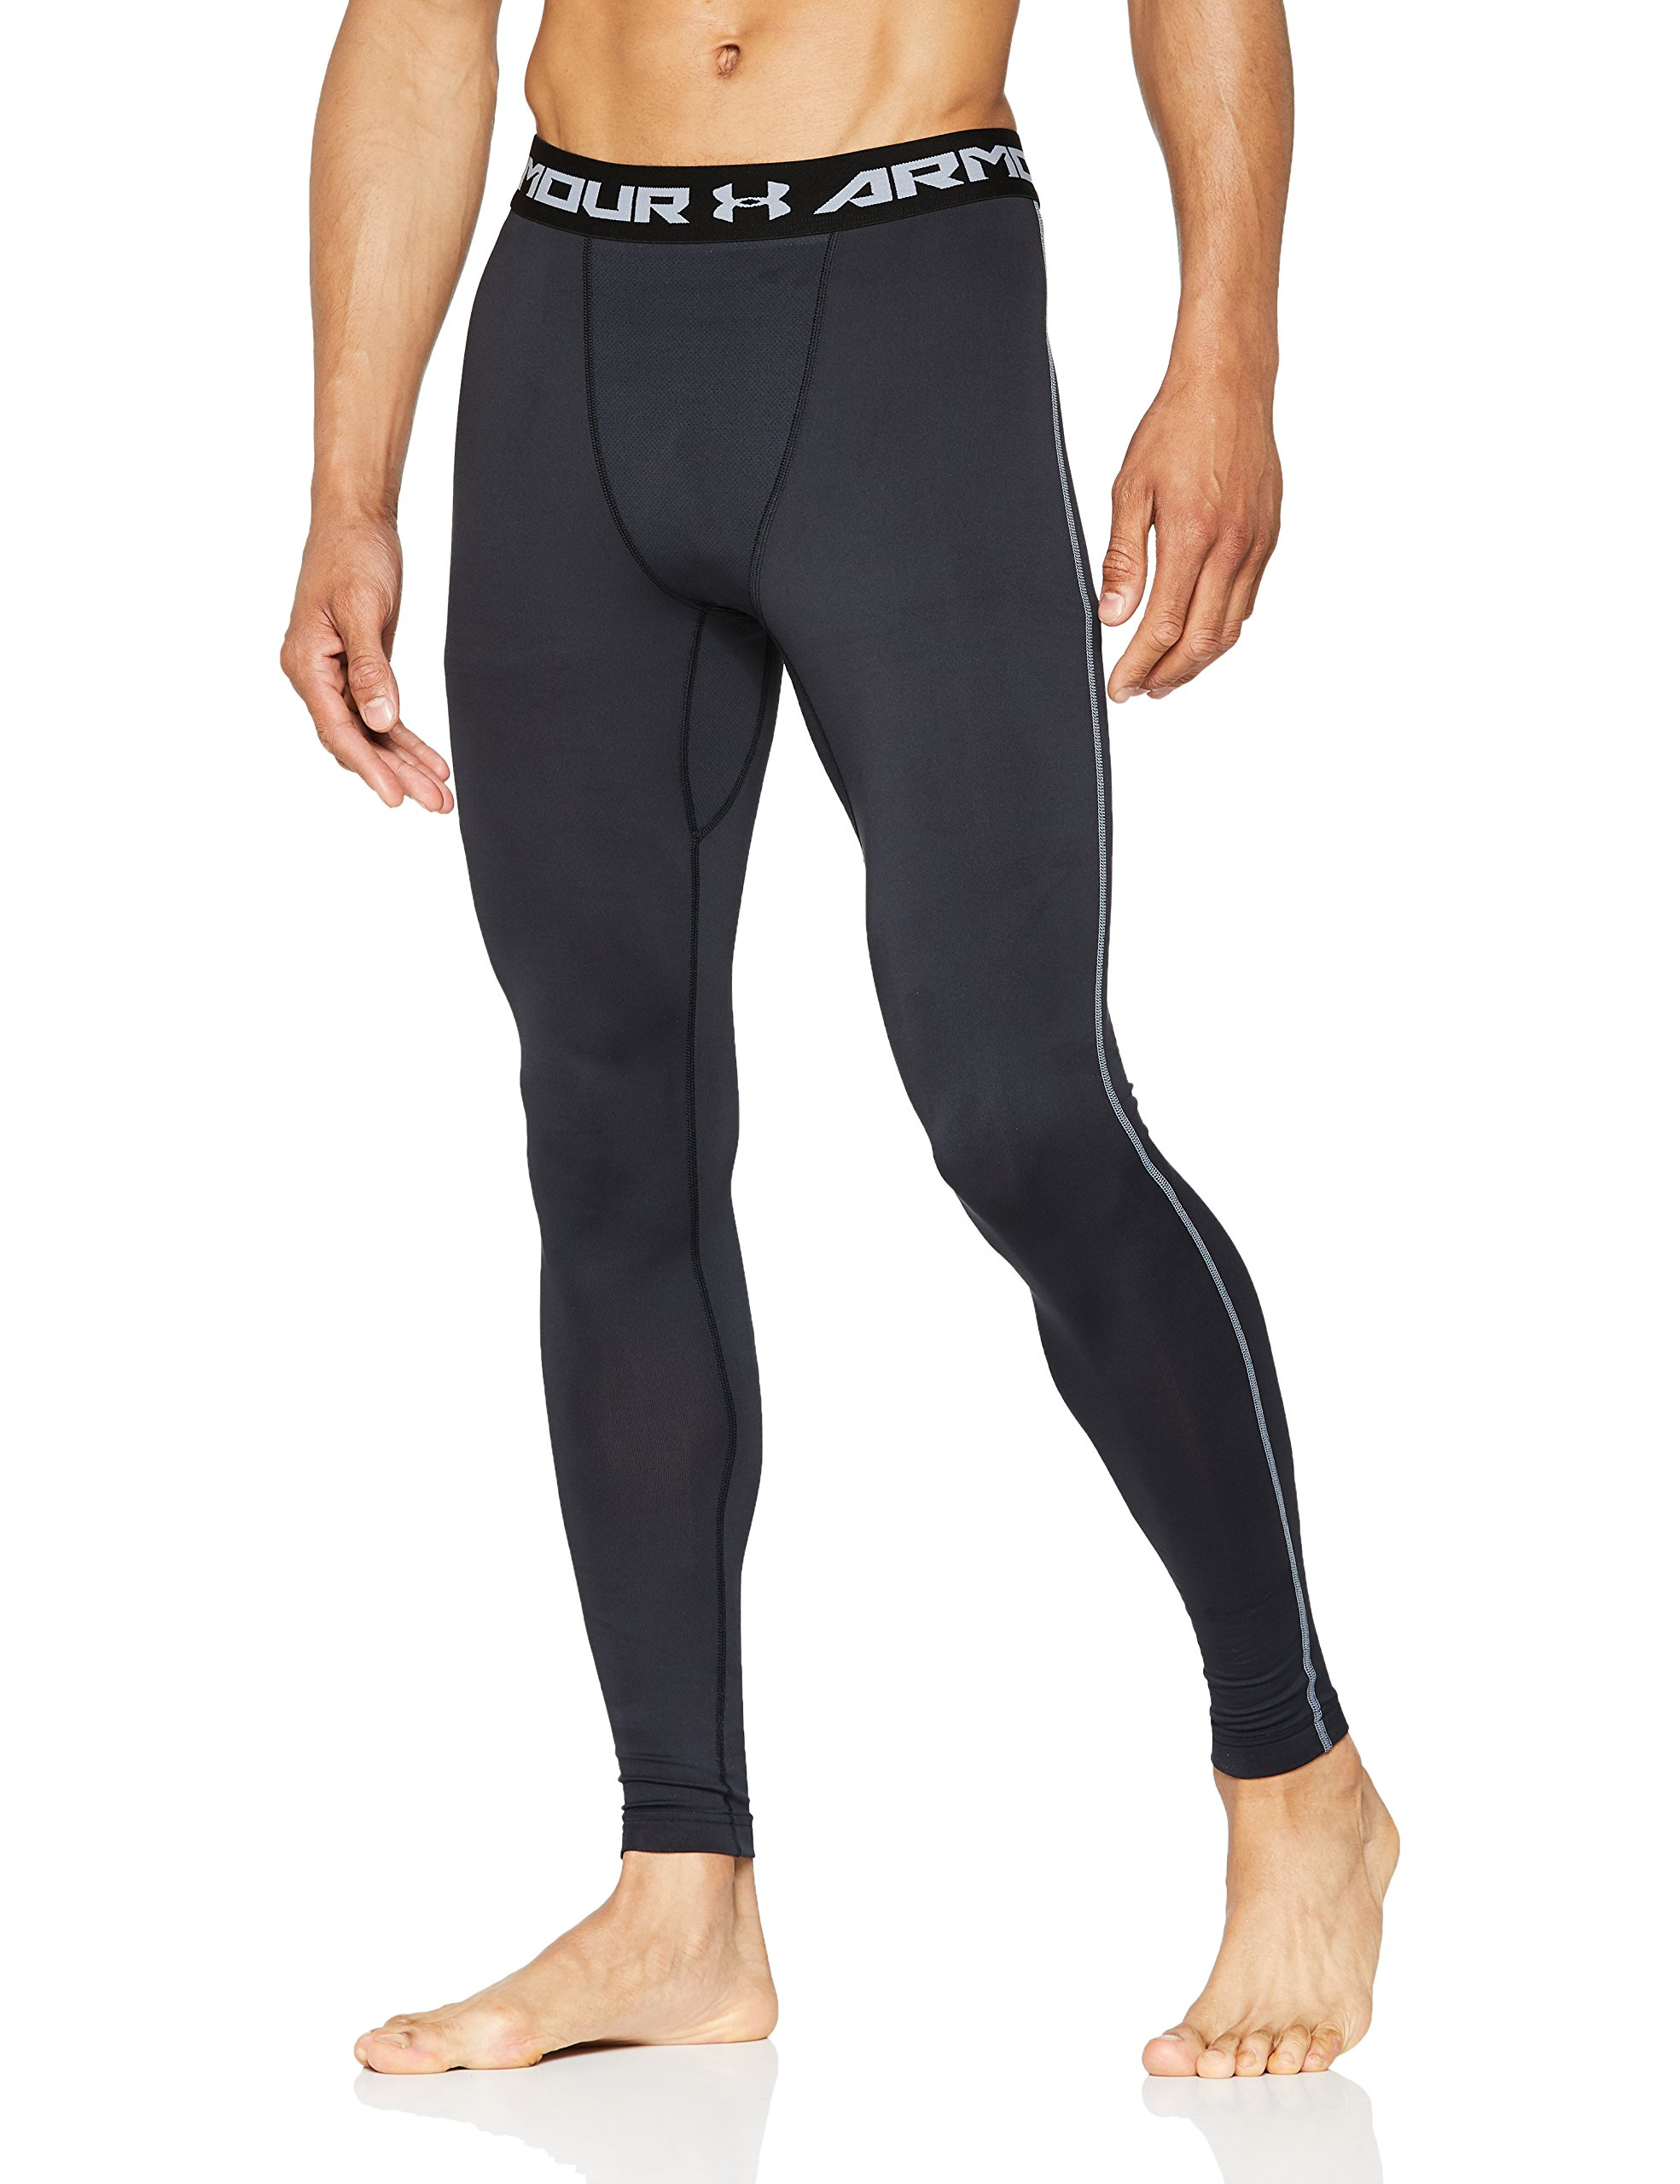 937ad9aad26 Under Armour Men s ColdGear Armour Compression Leggings product image